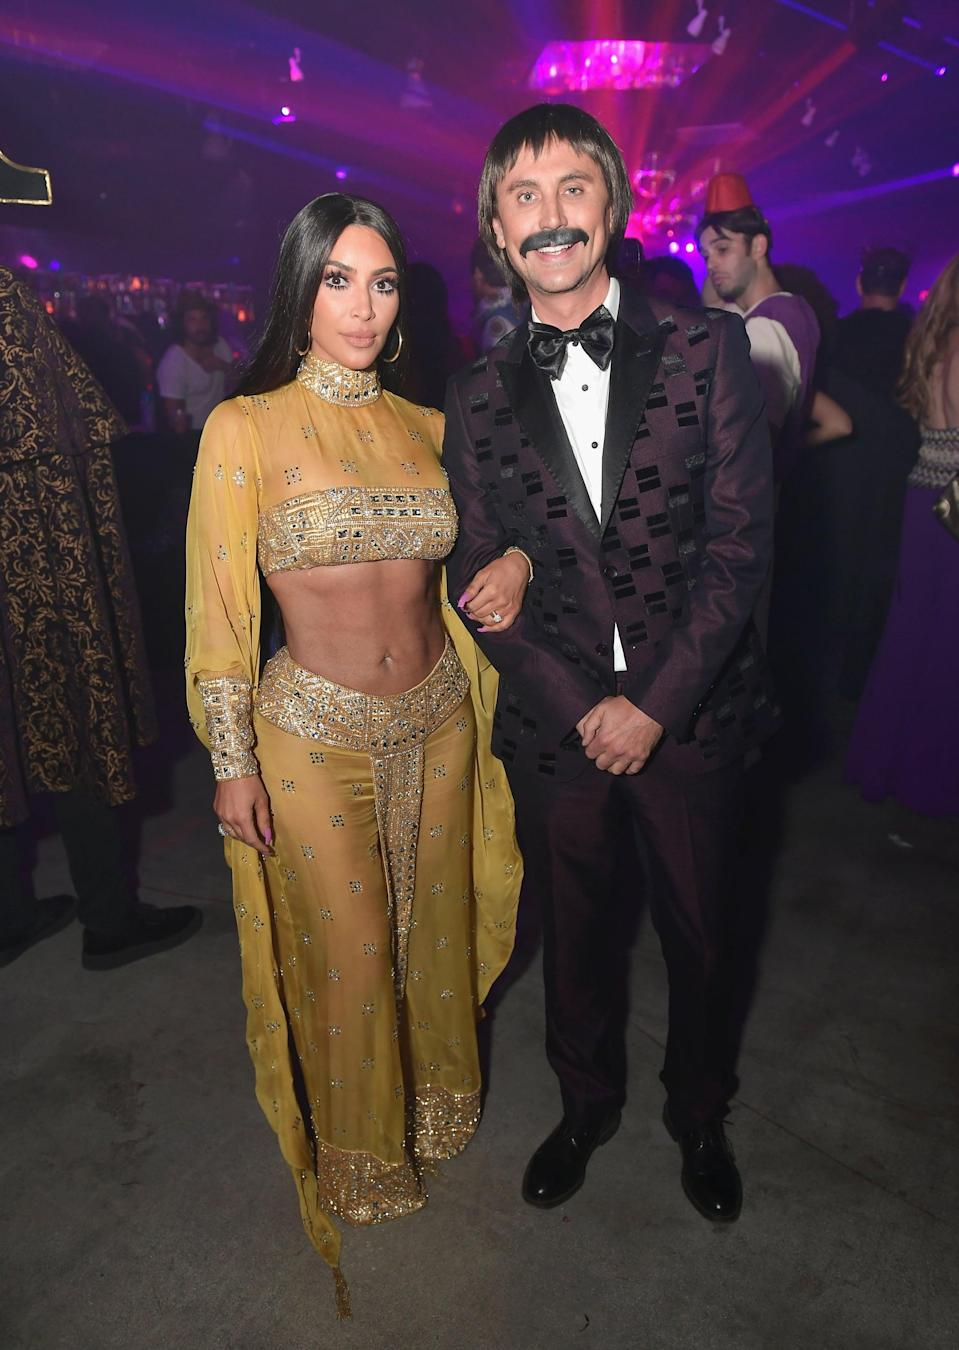 "<p>Jonathan Cheban and <a class=""link rapid-noclick-resp"" href=""https://www.popsugar.com/Kim-Kardashian"" rel=""nofollow noopener"" target=""_blank"" data-ylk=""slk:Kim Kardashian"">Kim Kardashian</a> dressed as Sonny and Cher for the Casamigos <a class=""link rapid-noclick-resp"" href=""https://www.popsugar.com/Halloween"" rel=""nofollow noopener"" target=""_blank"" data-ylk=""slk:Halloween"">Halloween</a> Party in 2017, and their looks were spot on.</p>"